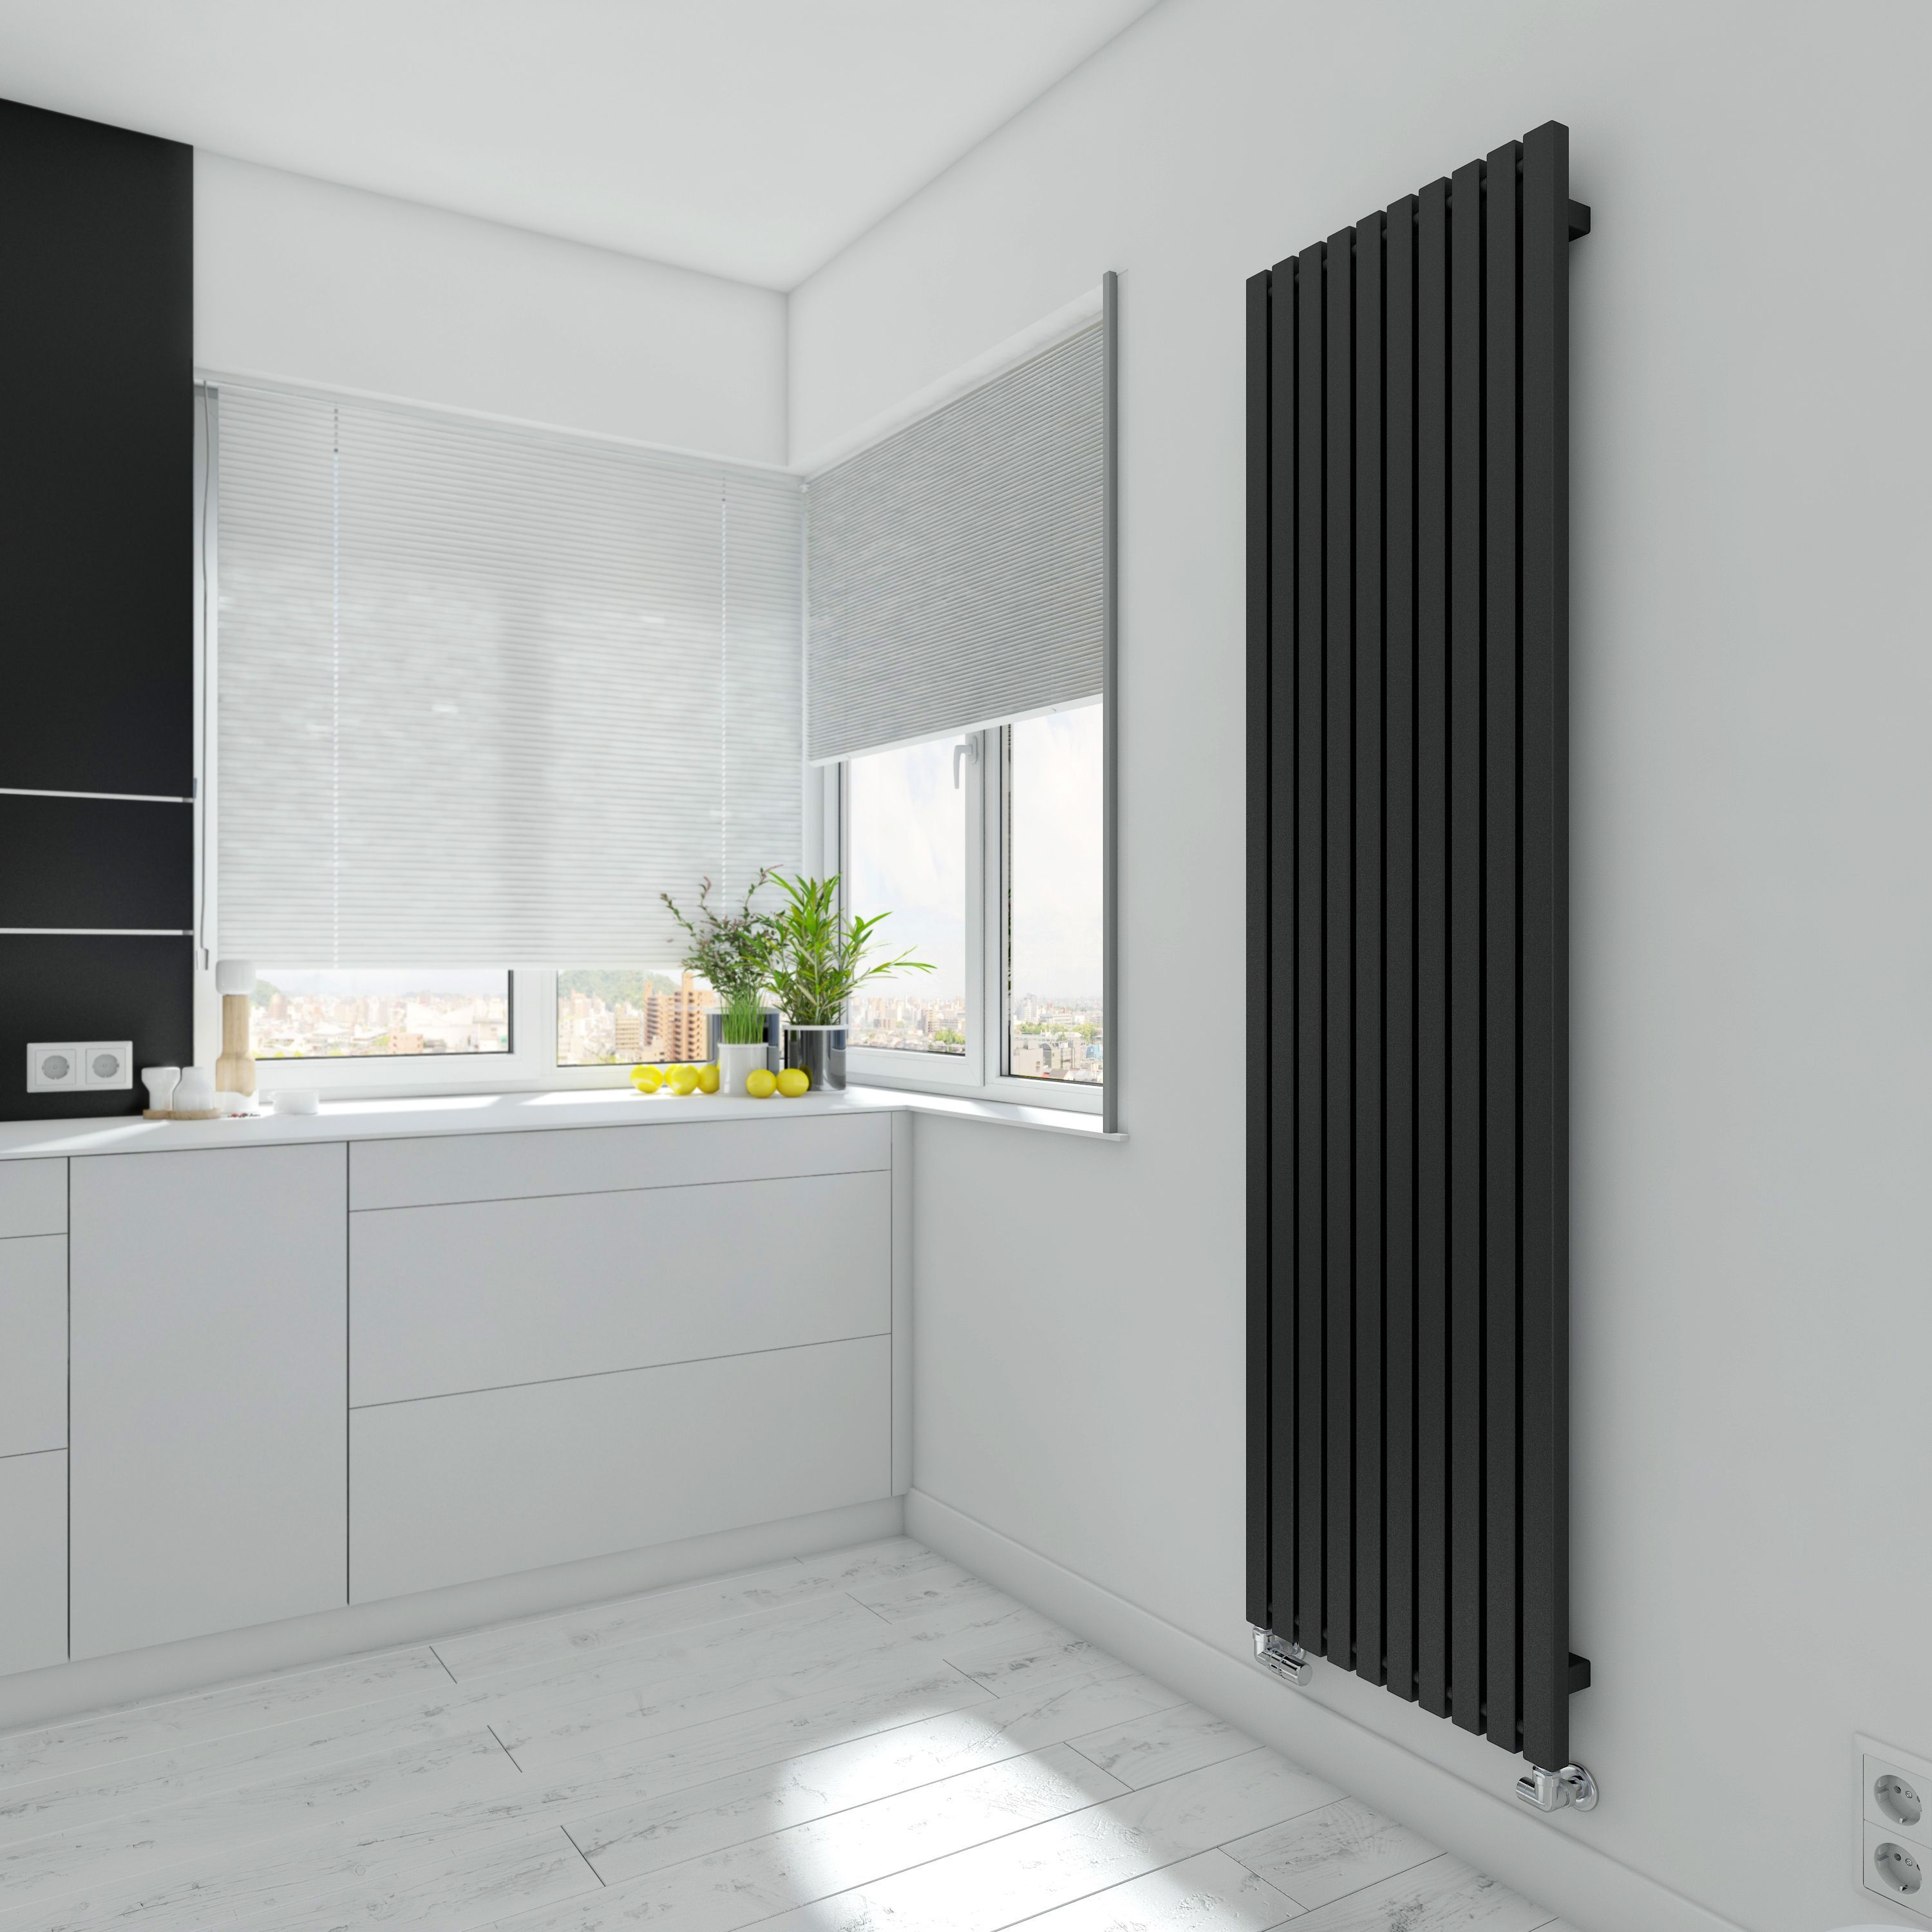 A great designer radiator should match the style of interior like